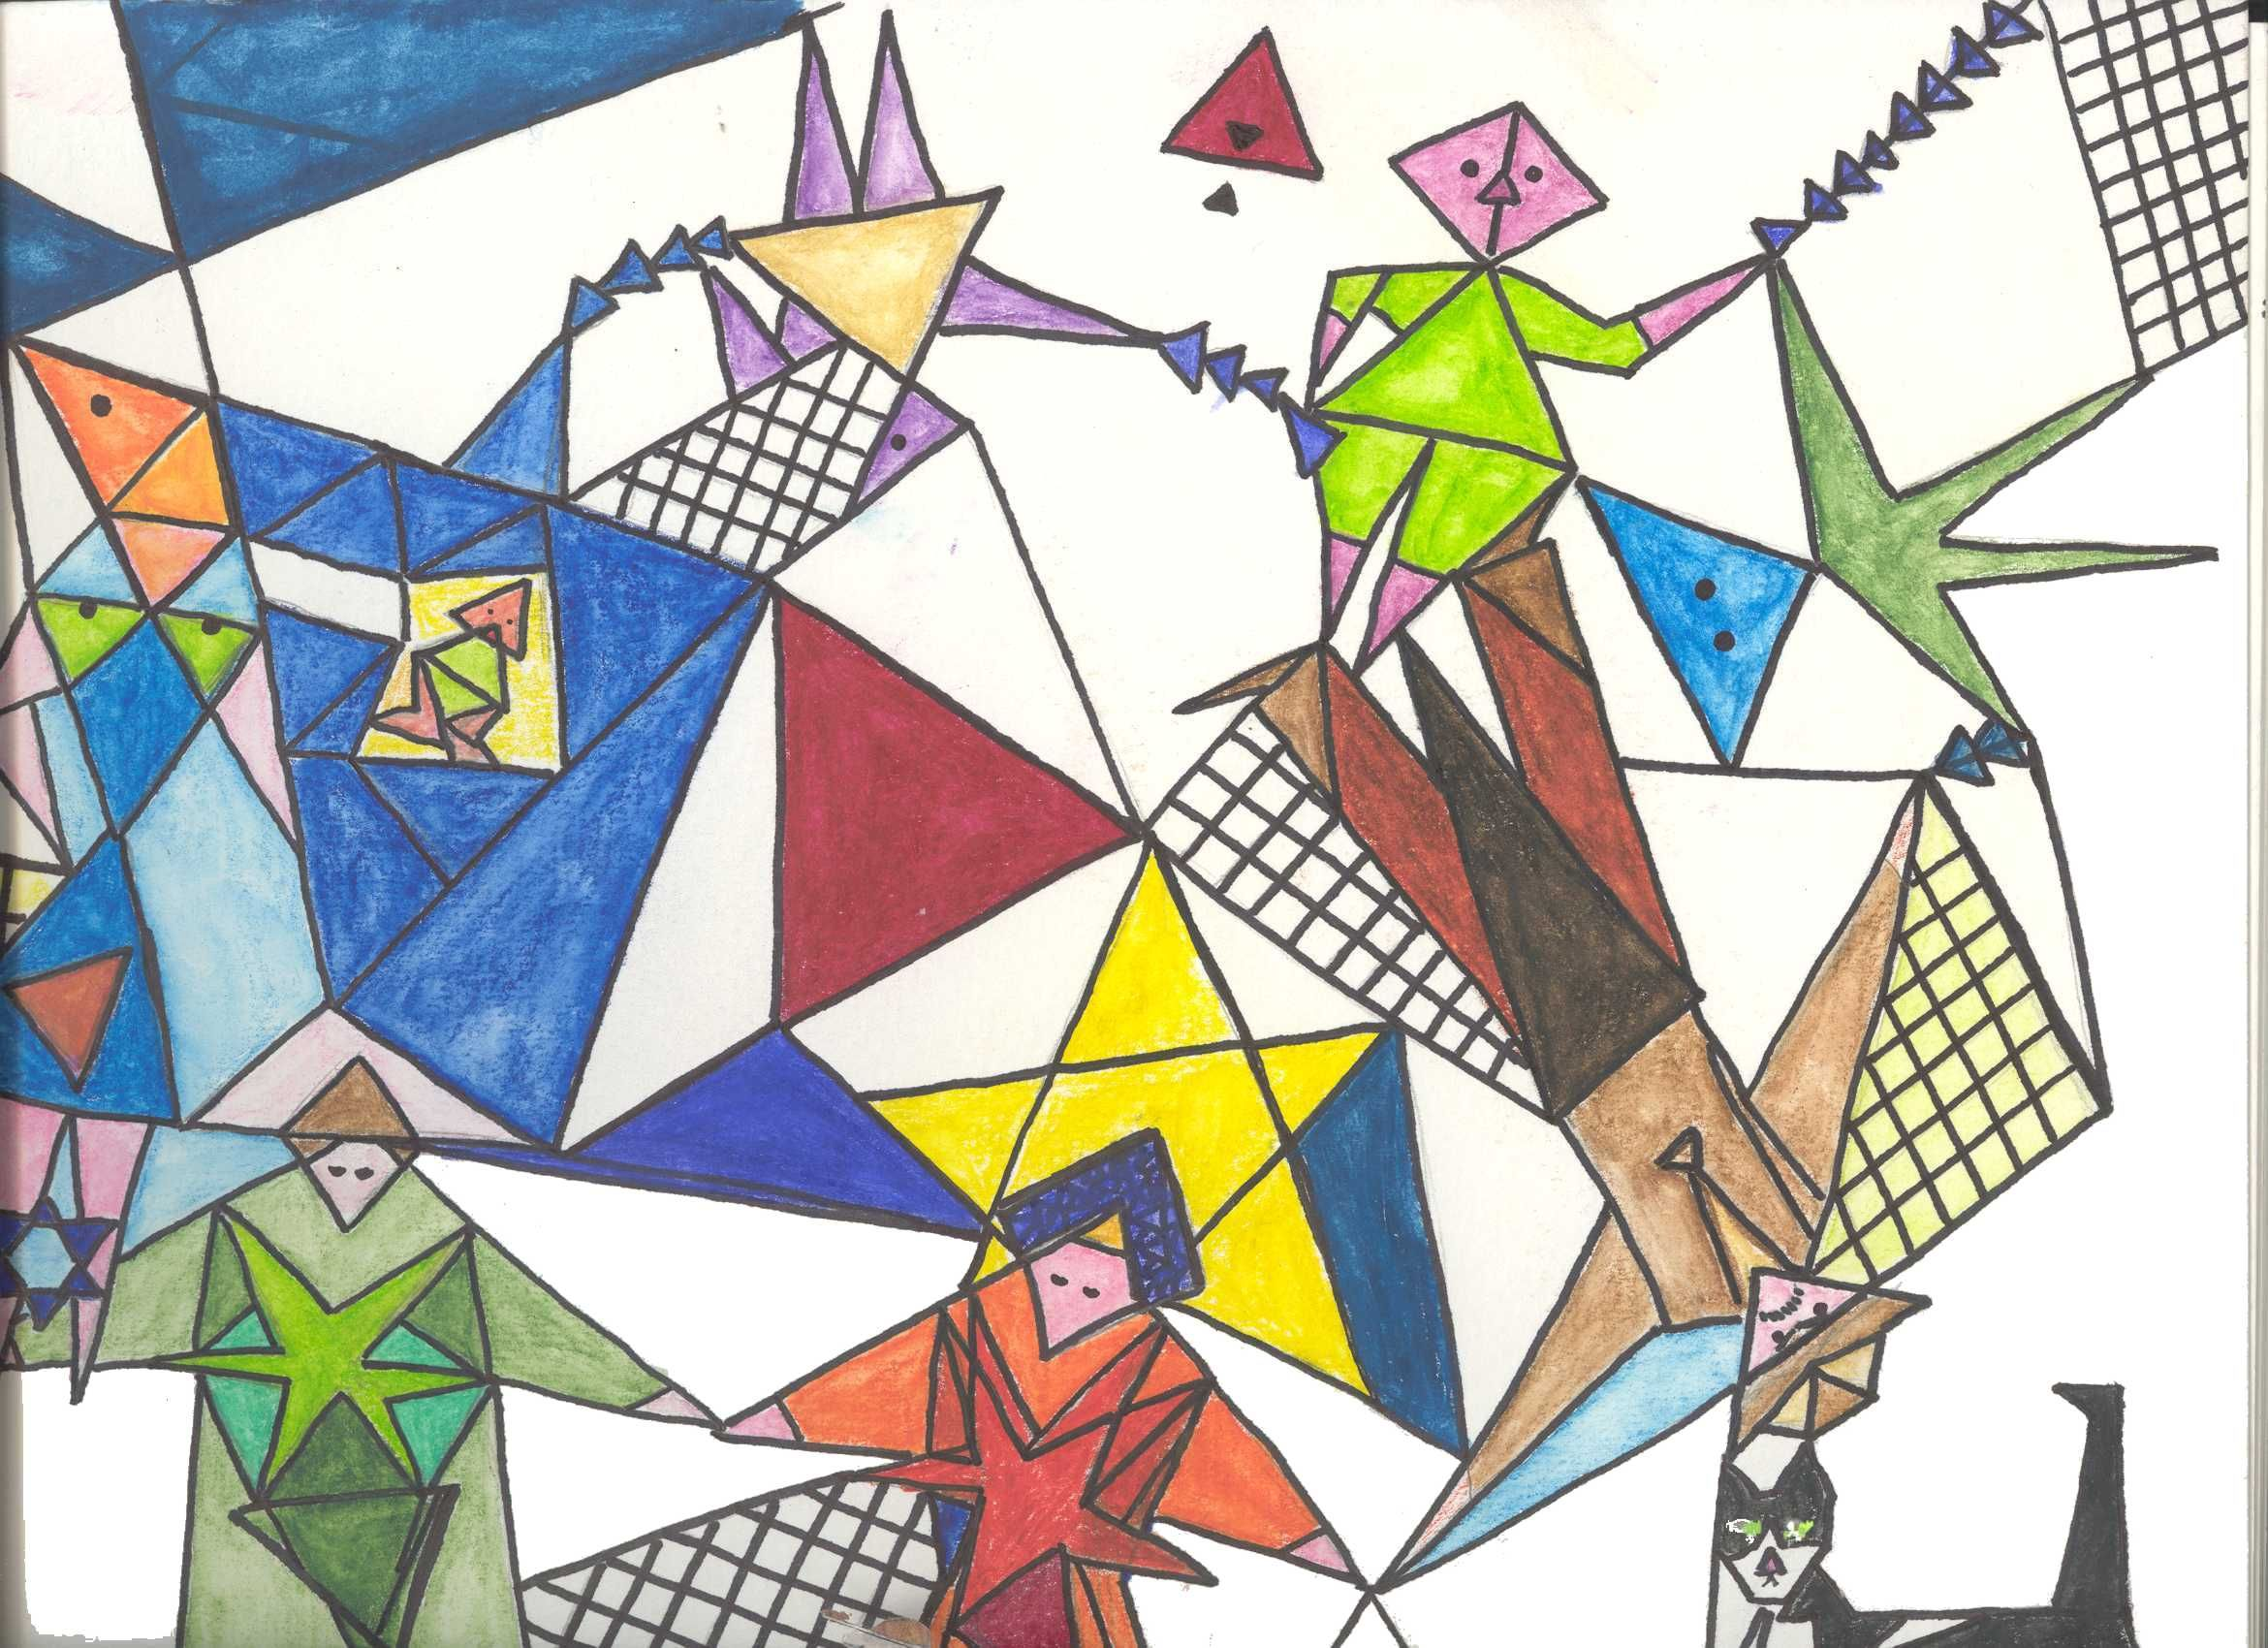 2340x1700 Jeanne's Conceptual Drawing With Triangle Units. Triangle